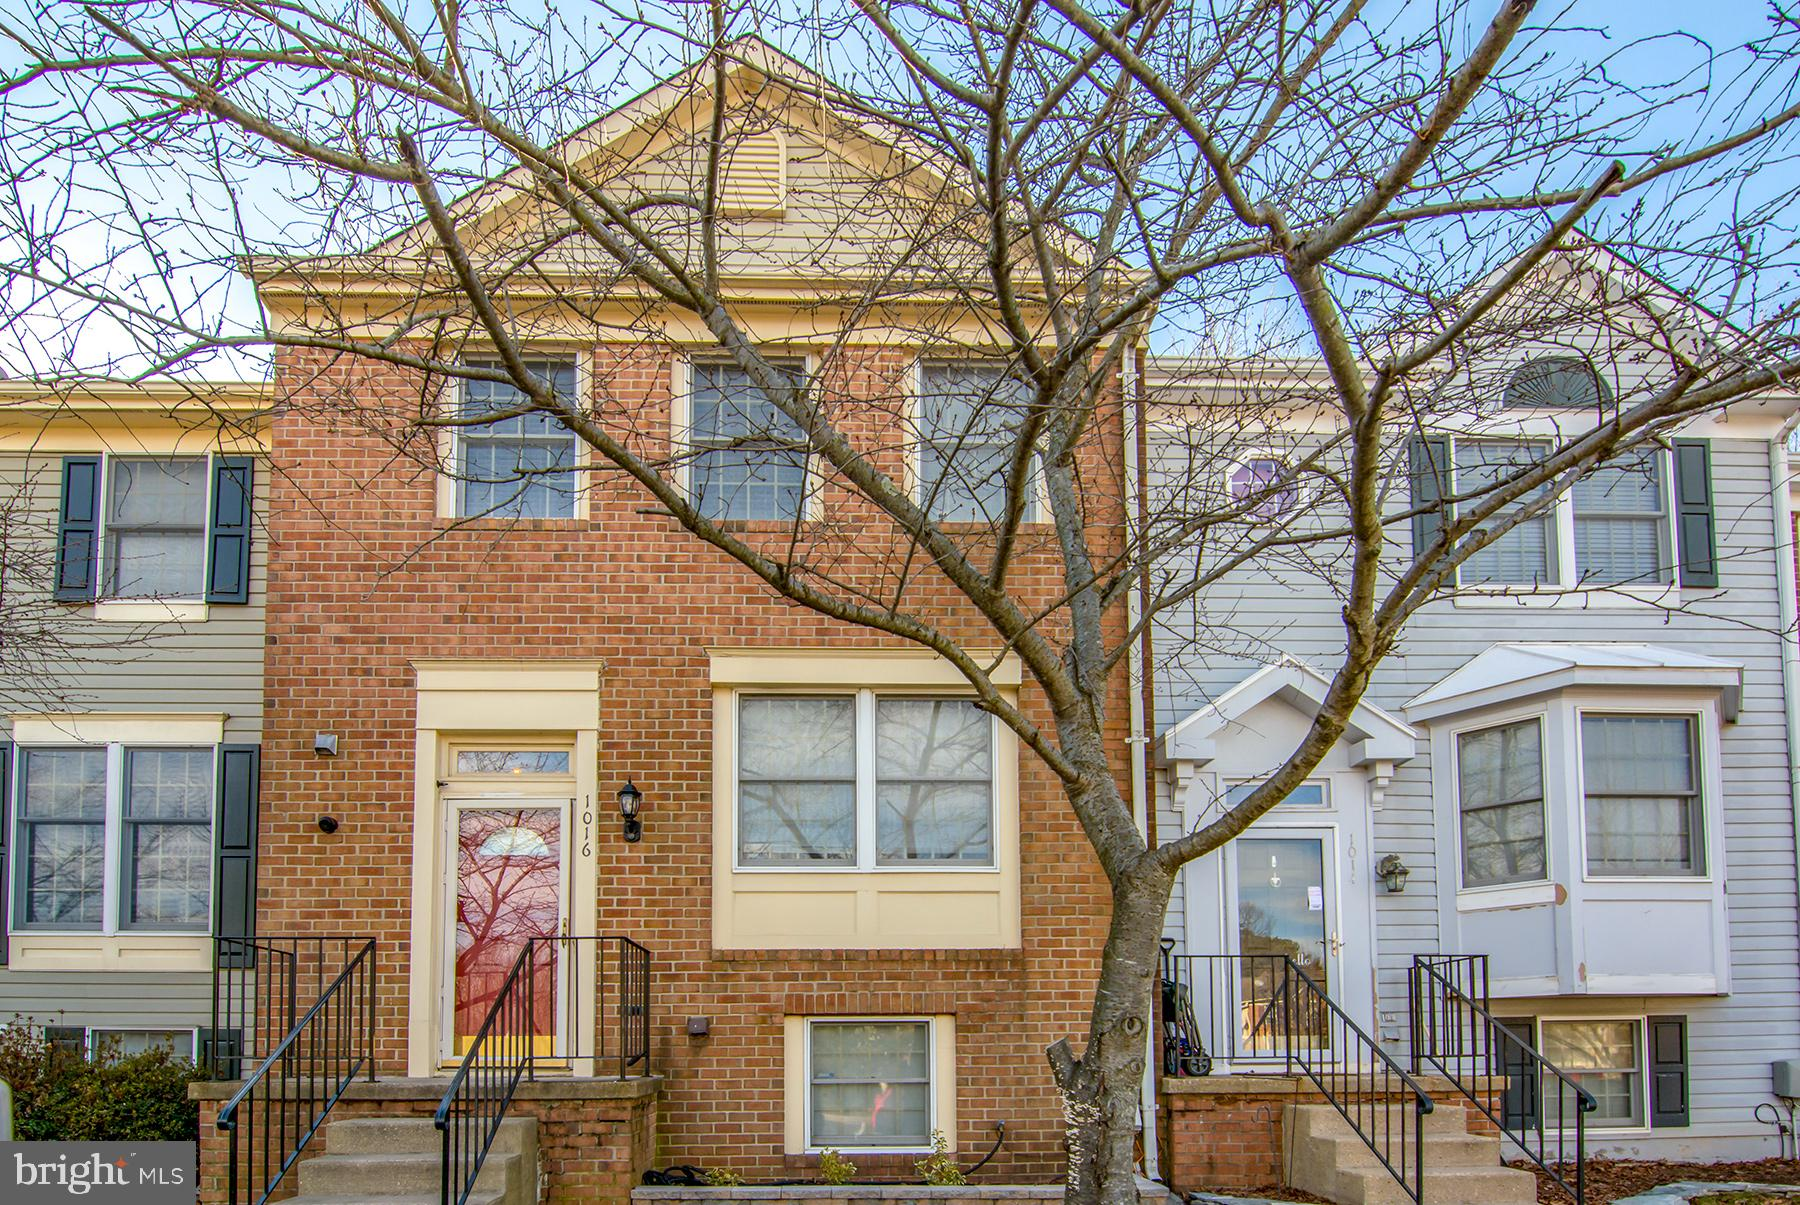 1016 ARBORWOOD PLACE, CHESTNUT HILL COVE, MD 21226